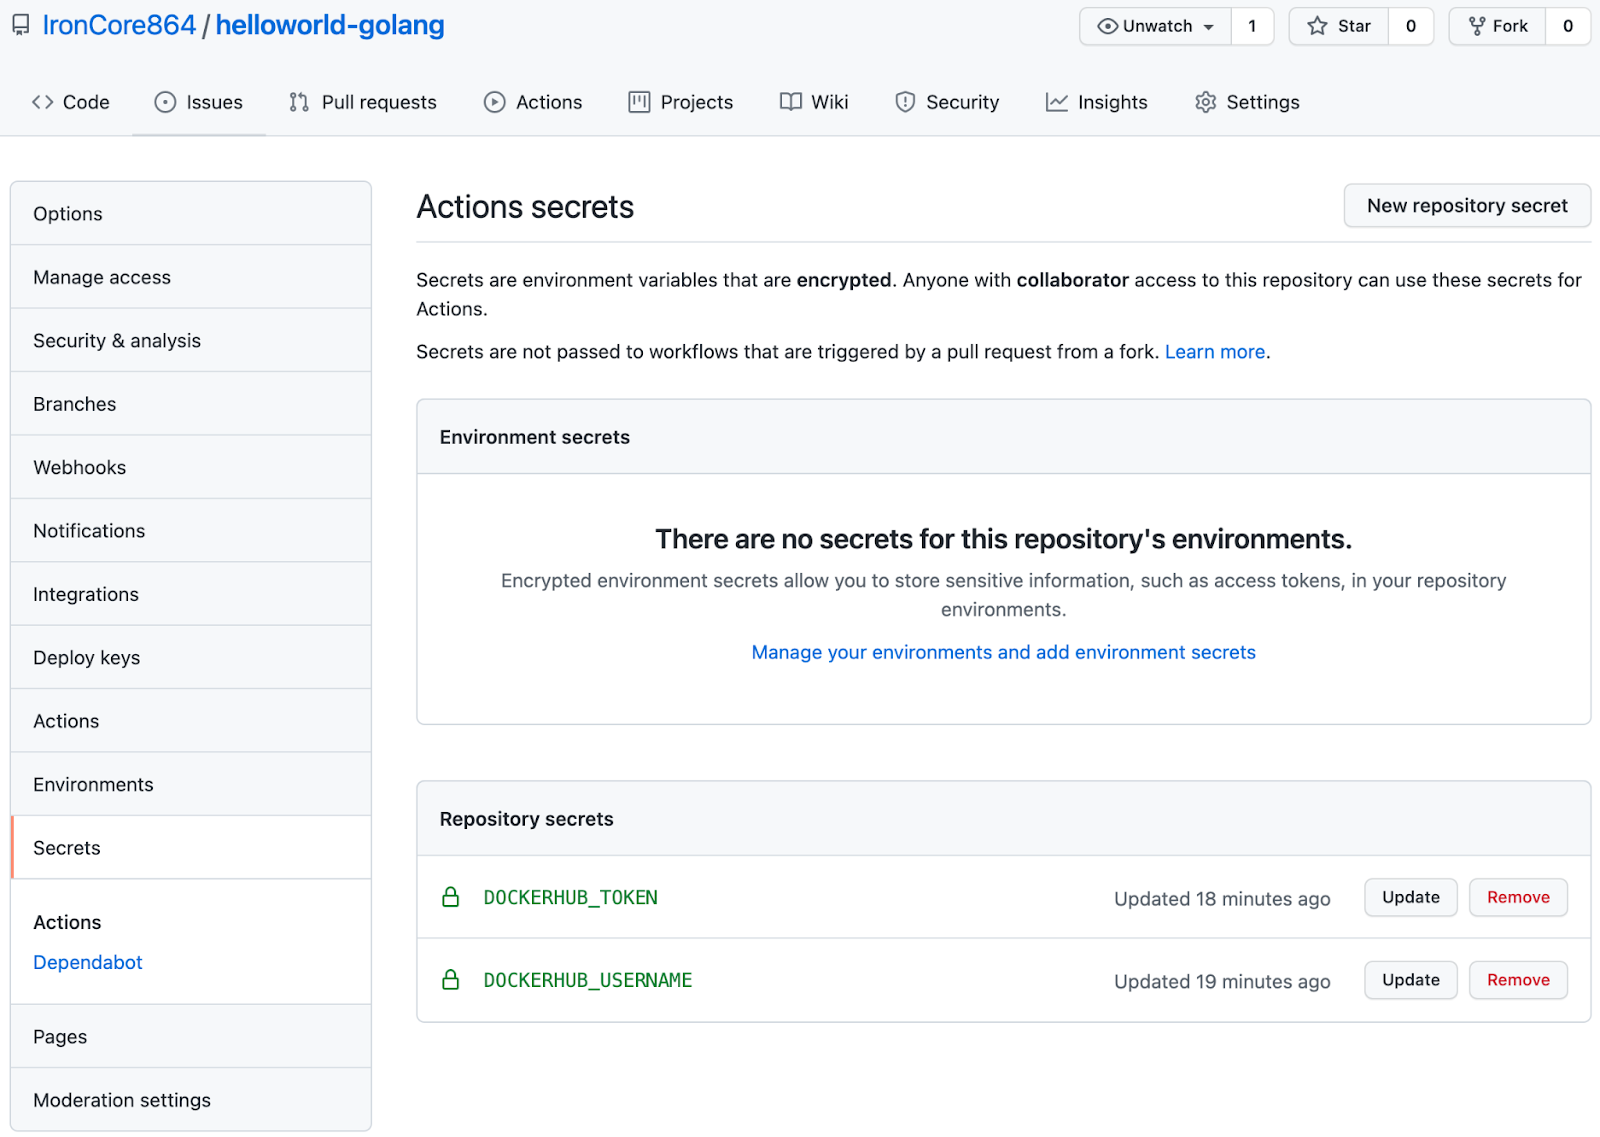 Managing secrets from the GitHub repository